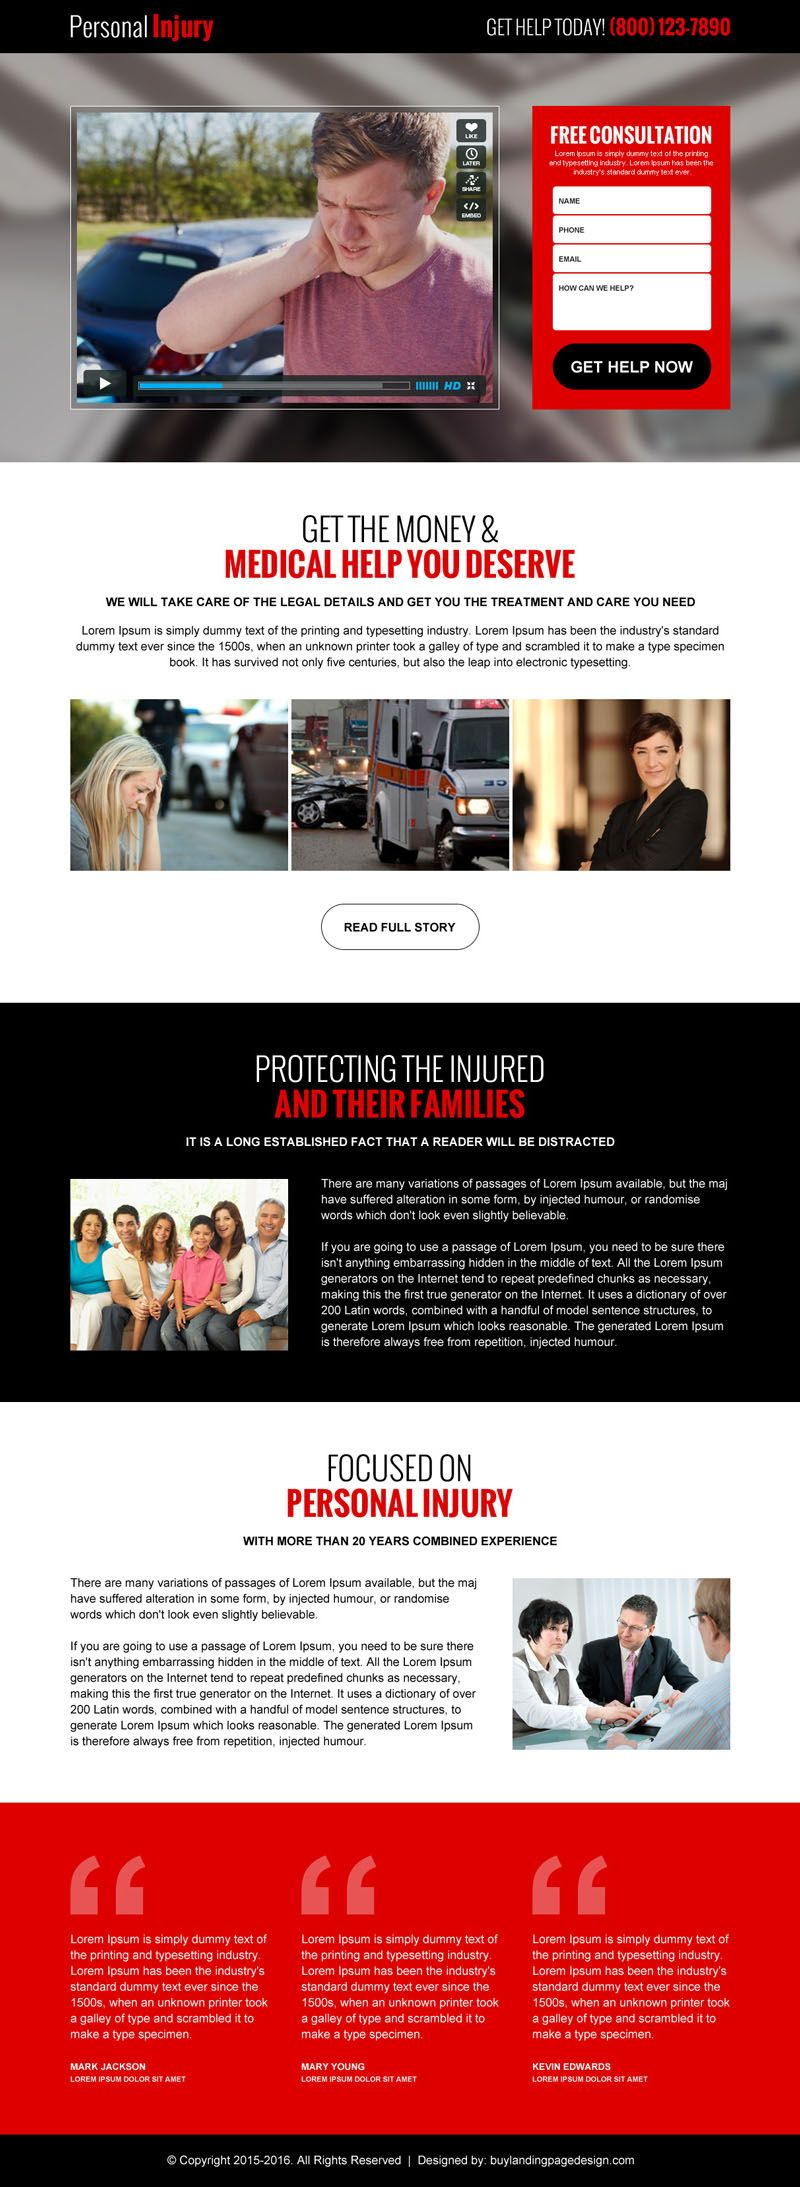 Personal Injury Lead Generation Best Video Landing Page Design - Personal landing page template